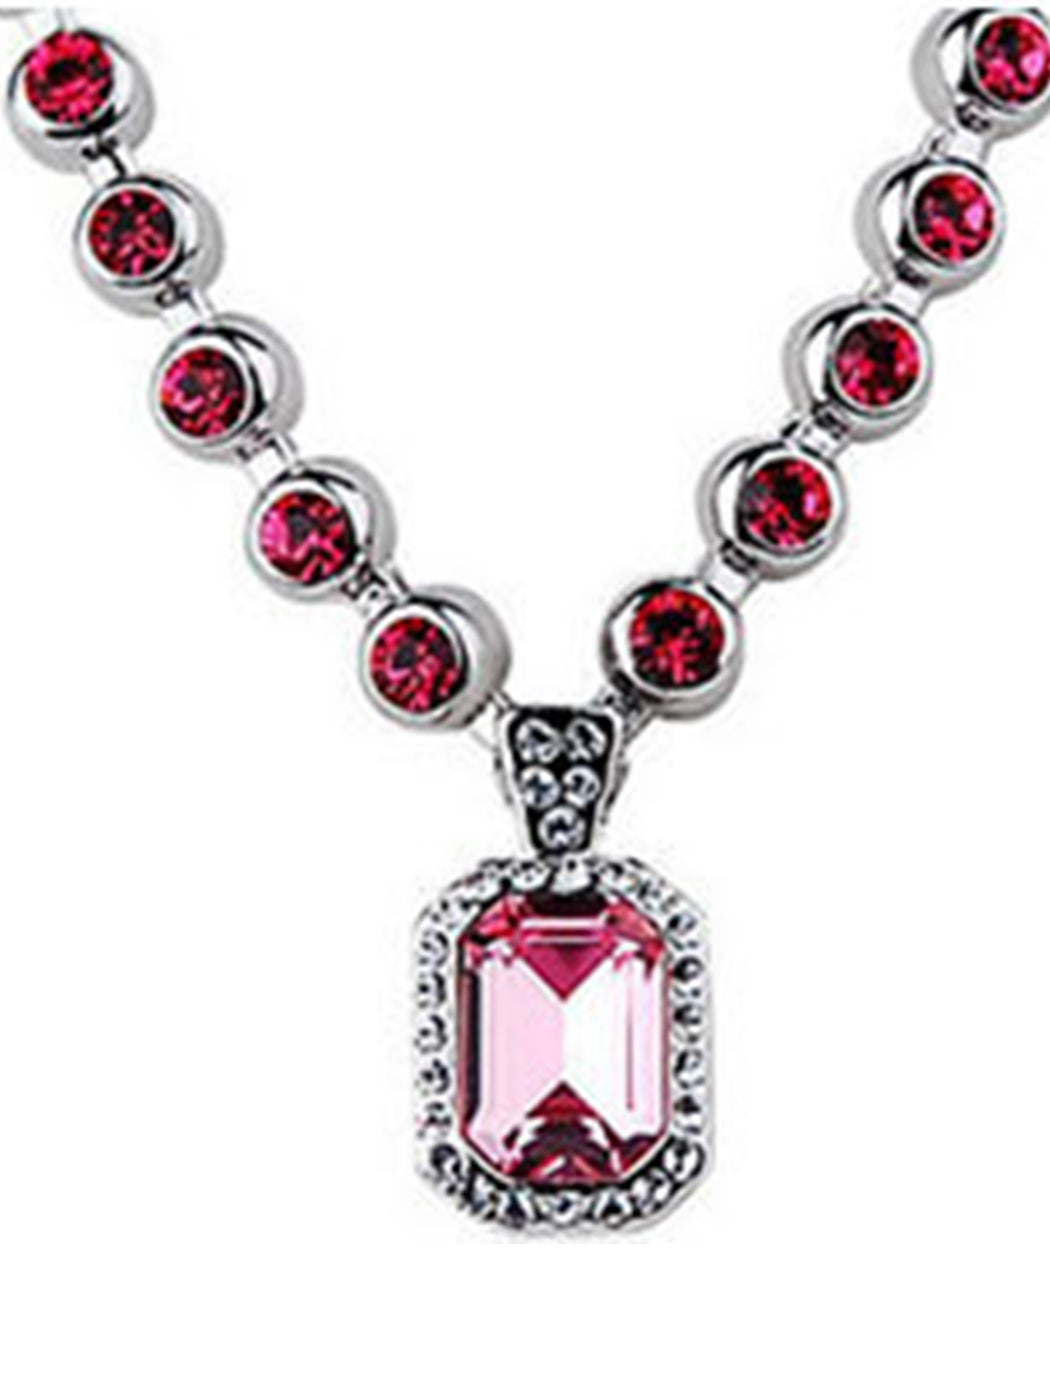 Swarovski Crystal Rose Pink Amulet Chain Jewelry Pendant Necklace